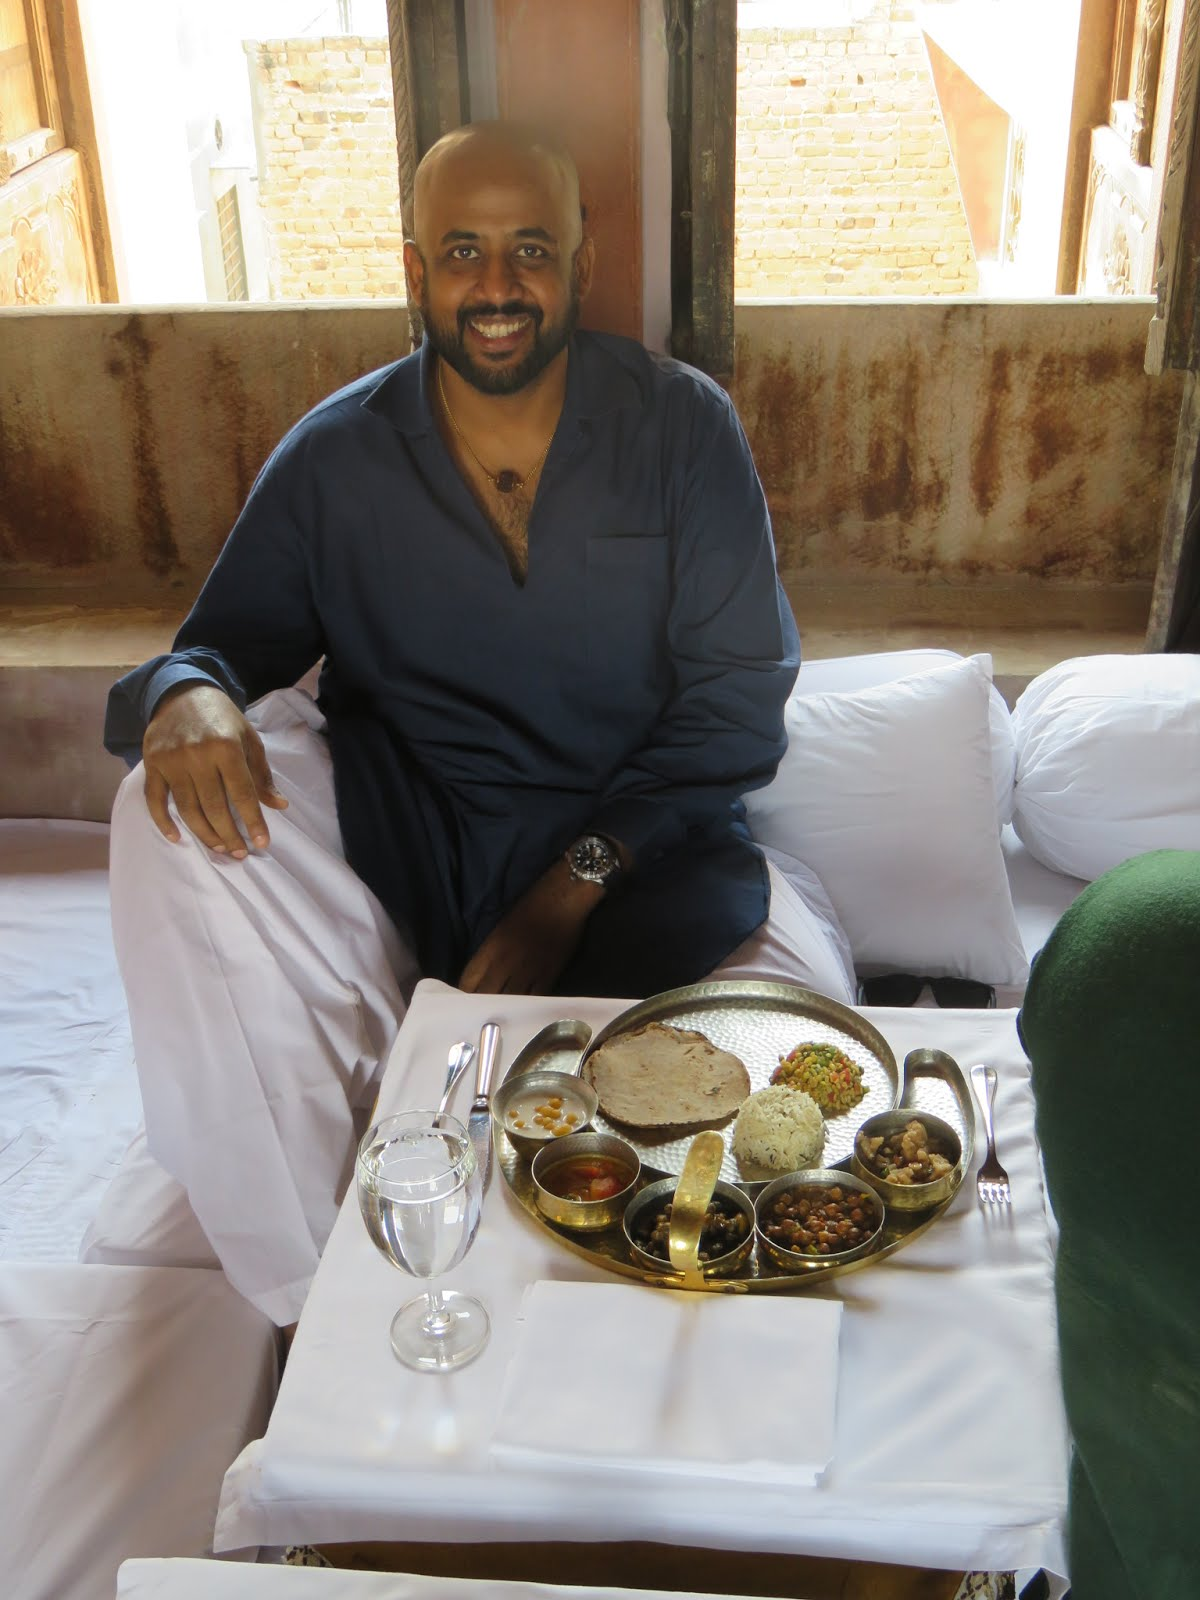 Marwari Lunch time at a haveli in Bikaner